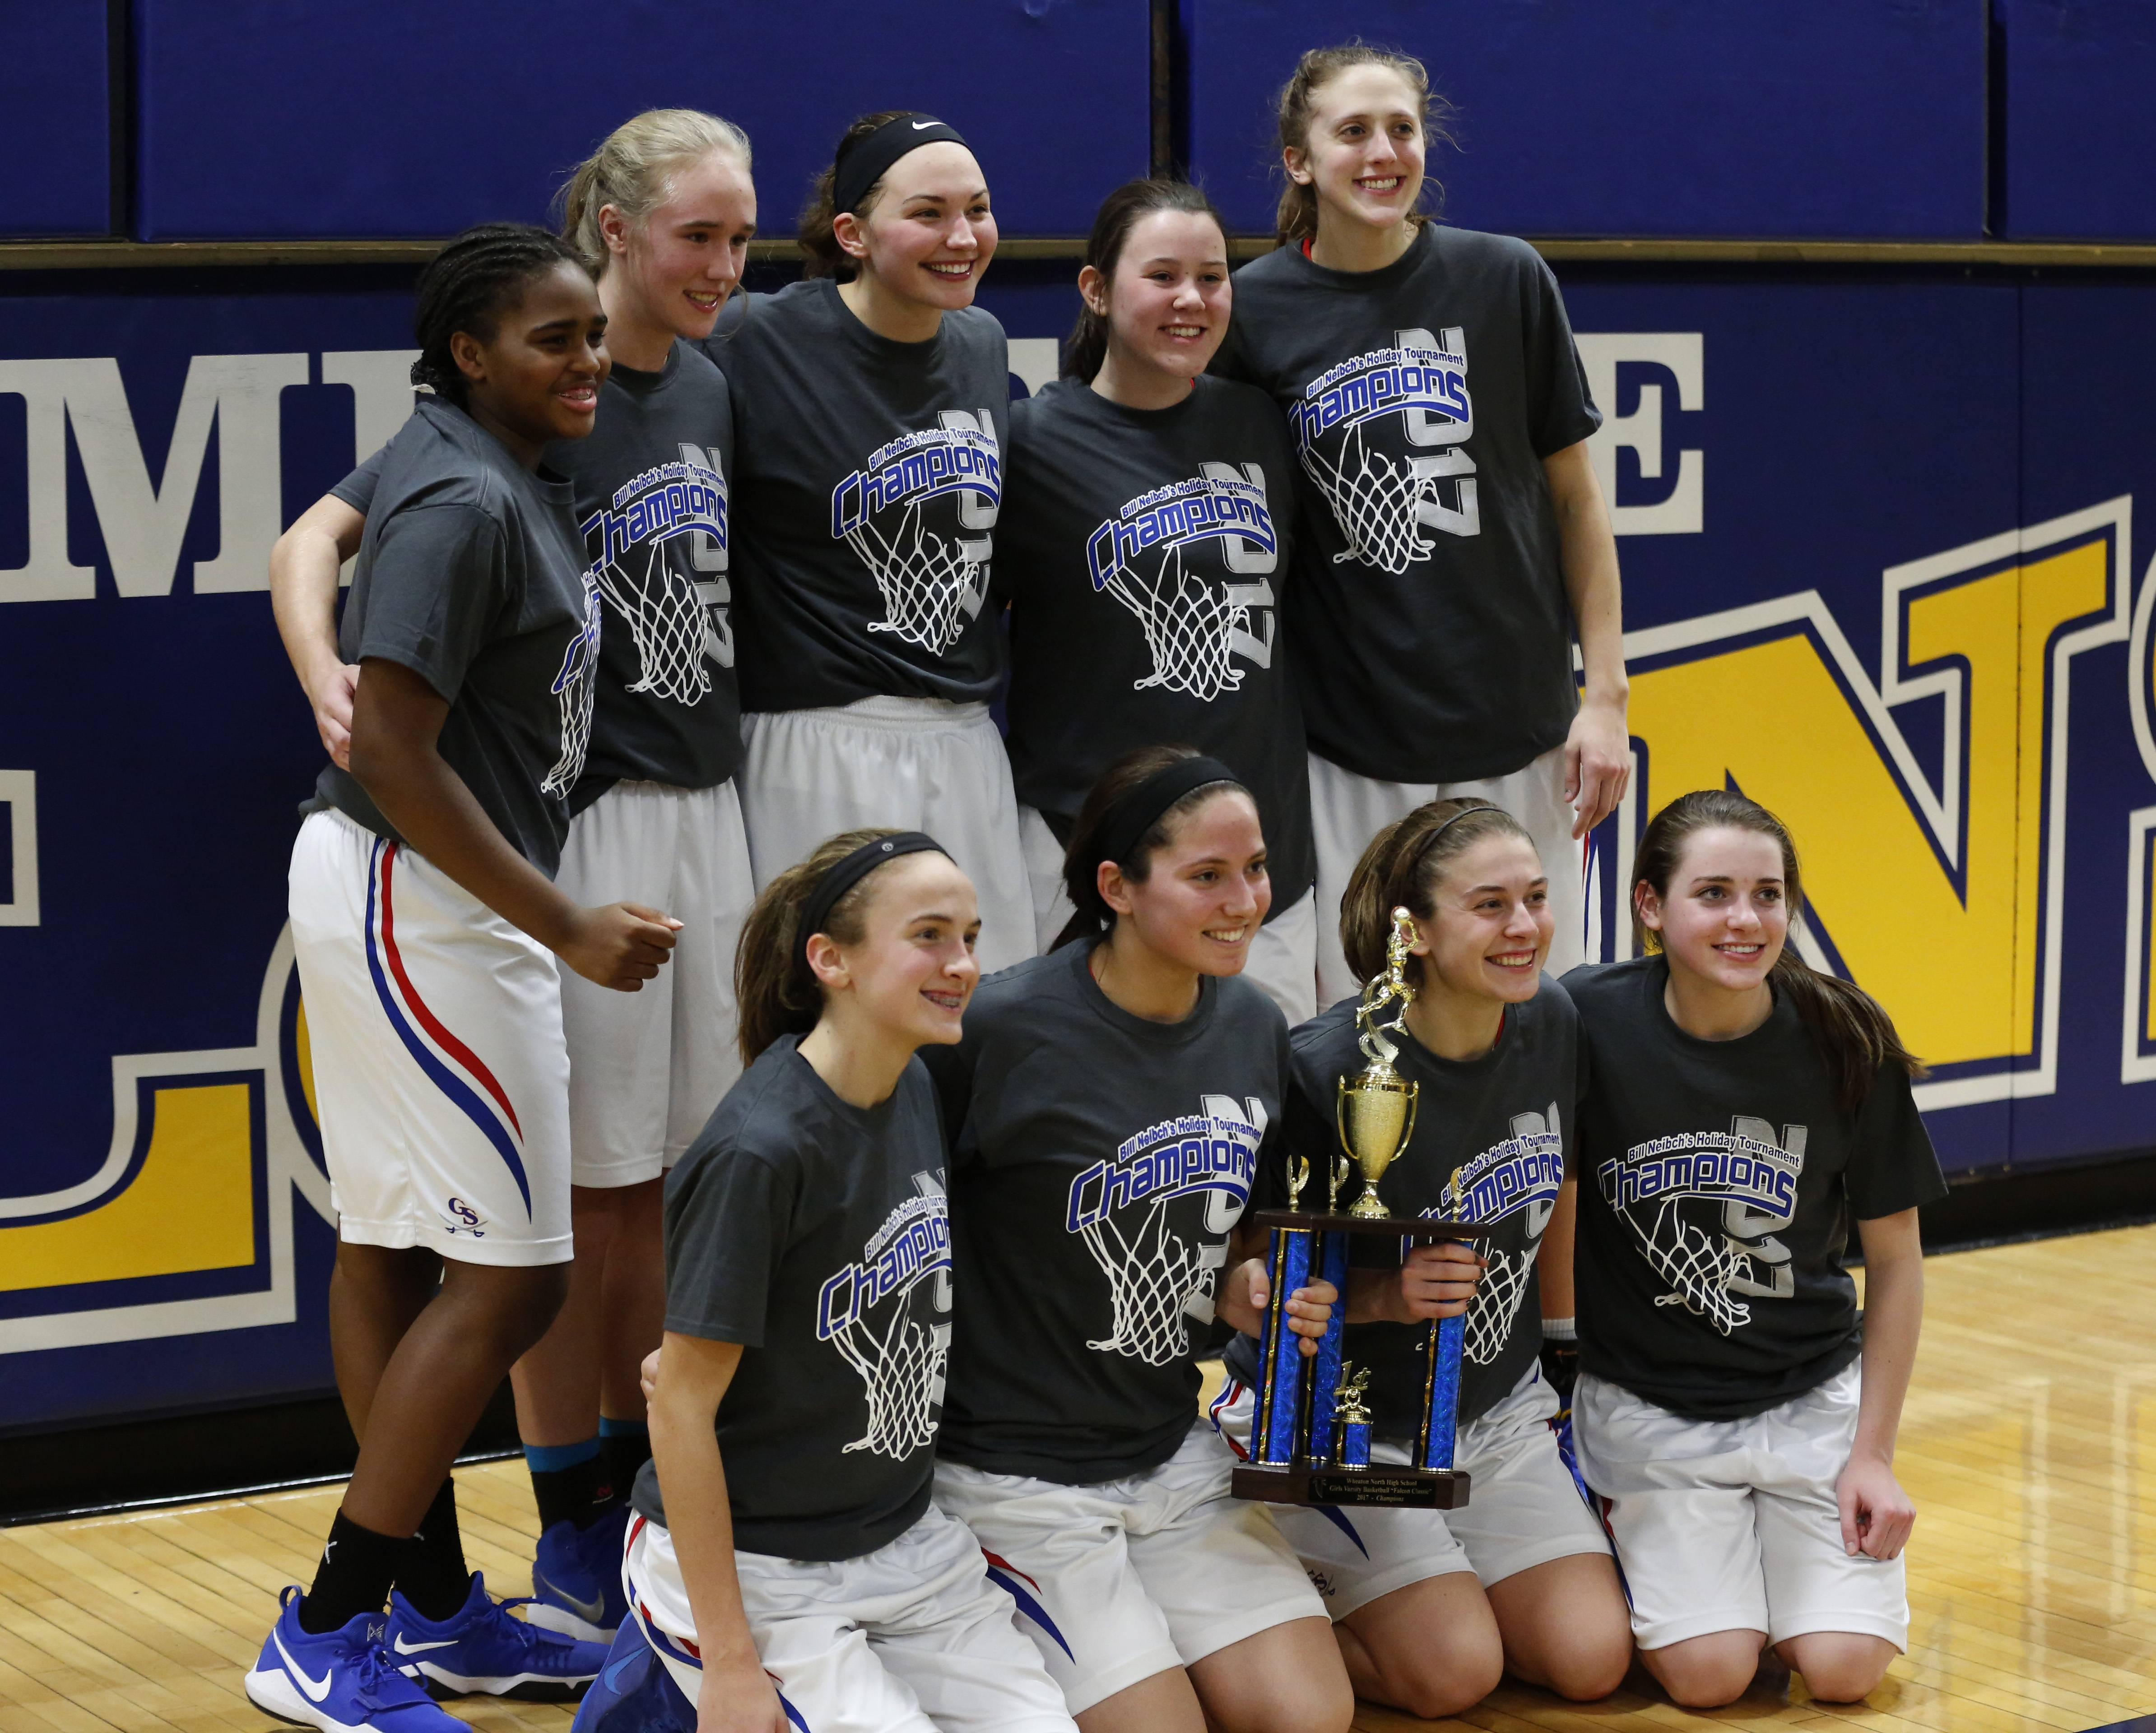 Glenbard South players celebrate their 40-27 win over West Aurora to capture the Wheaton North Bill Neibch Falcon girls basketball holiday tournament championship.